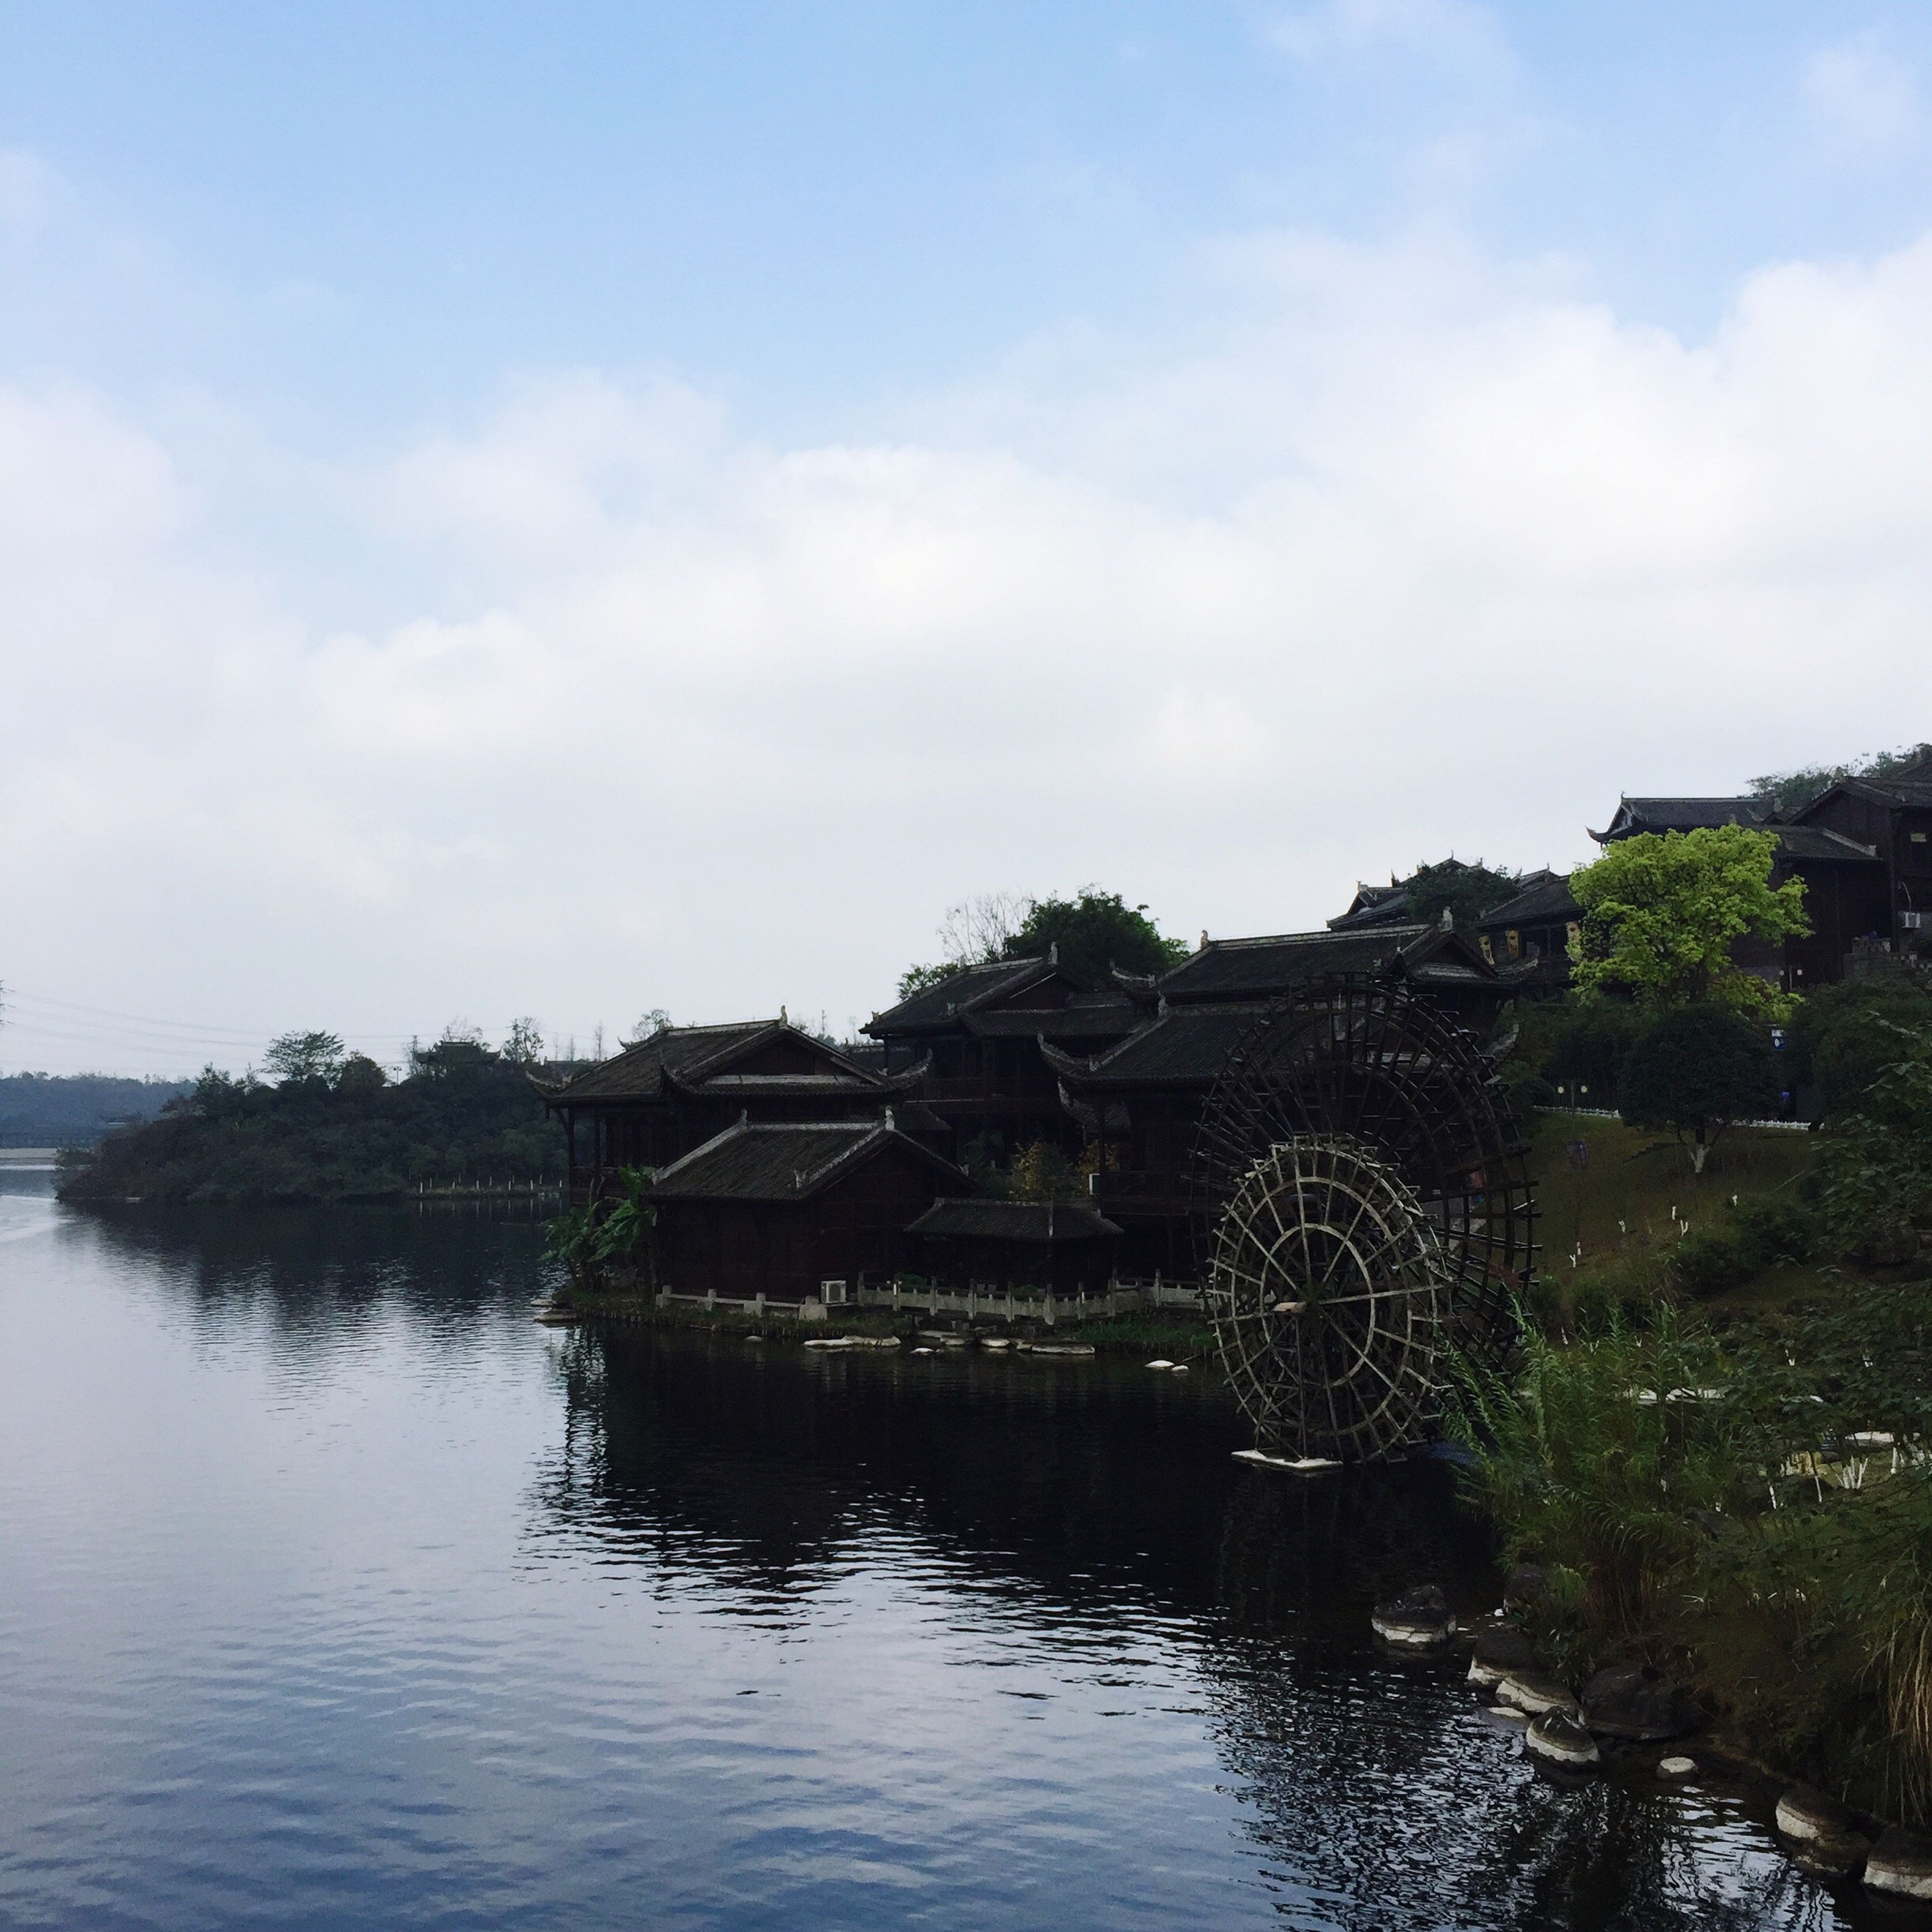 architecture, built structure, water, sky, river, building exterior, tree, waterfront, bridge - man made structure, connection, reflection, cloud - sky, lake, nature, bridge, outdoors, day, cloud, no people, tranquility